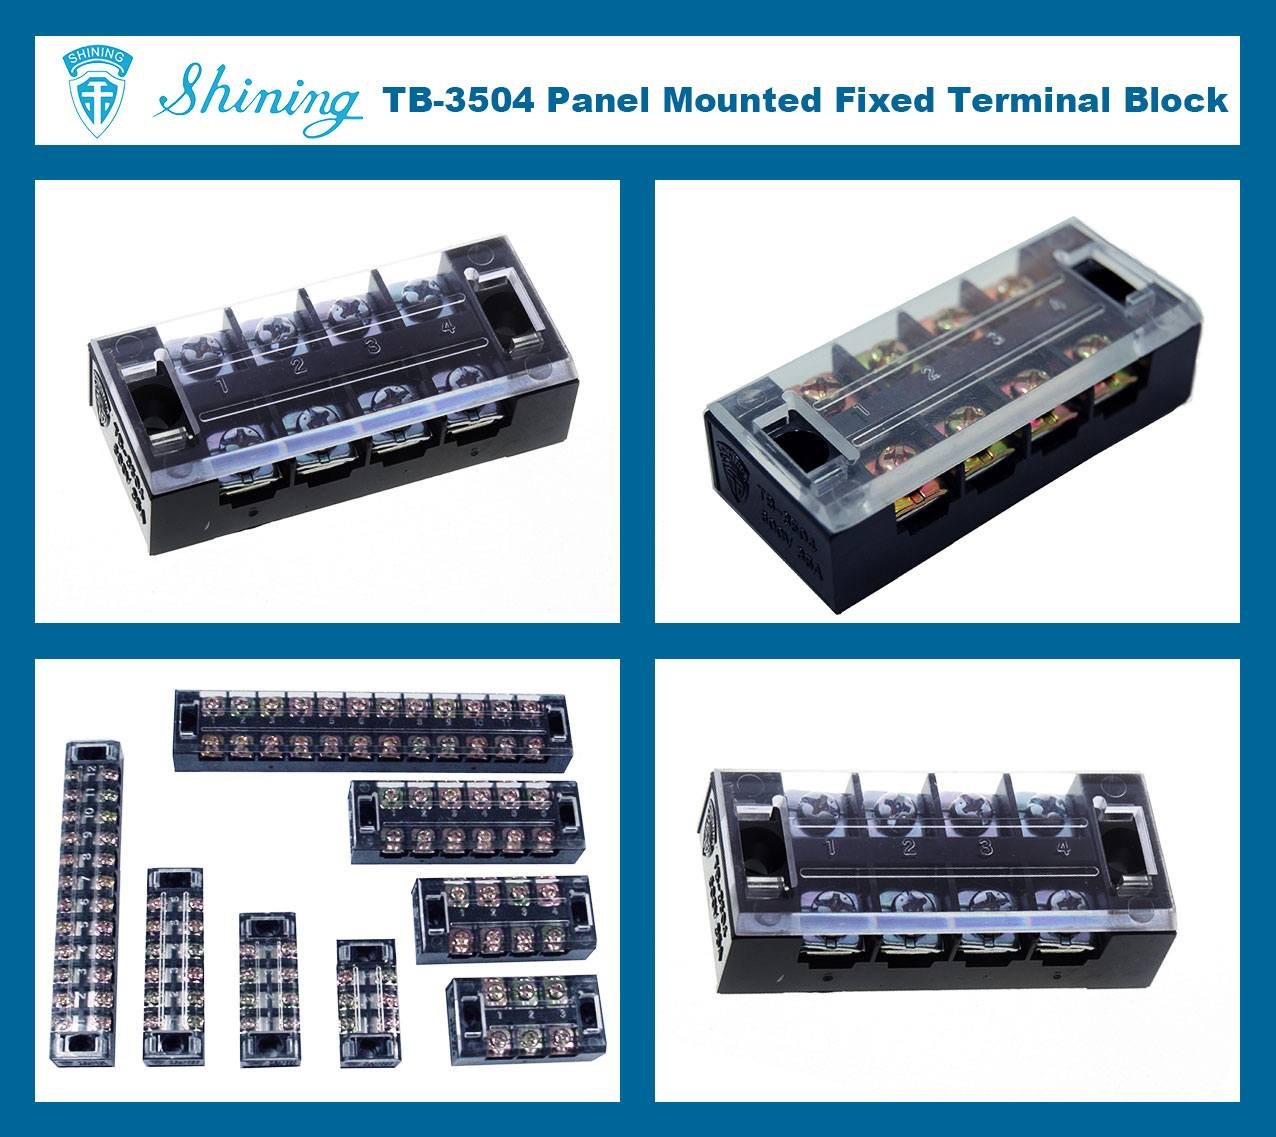 TB-3504 Panel Mounted Fixed Barrier 35A 4 Pole Terminal Block